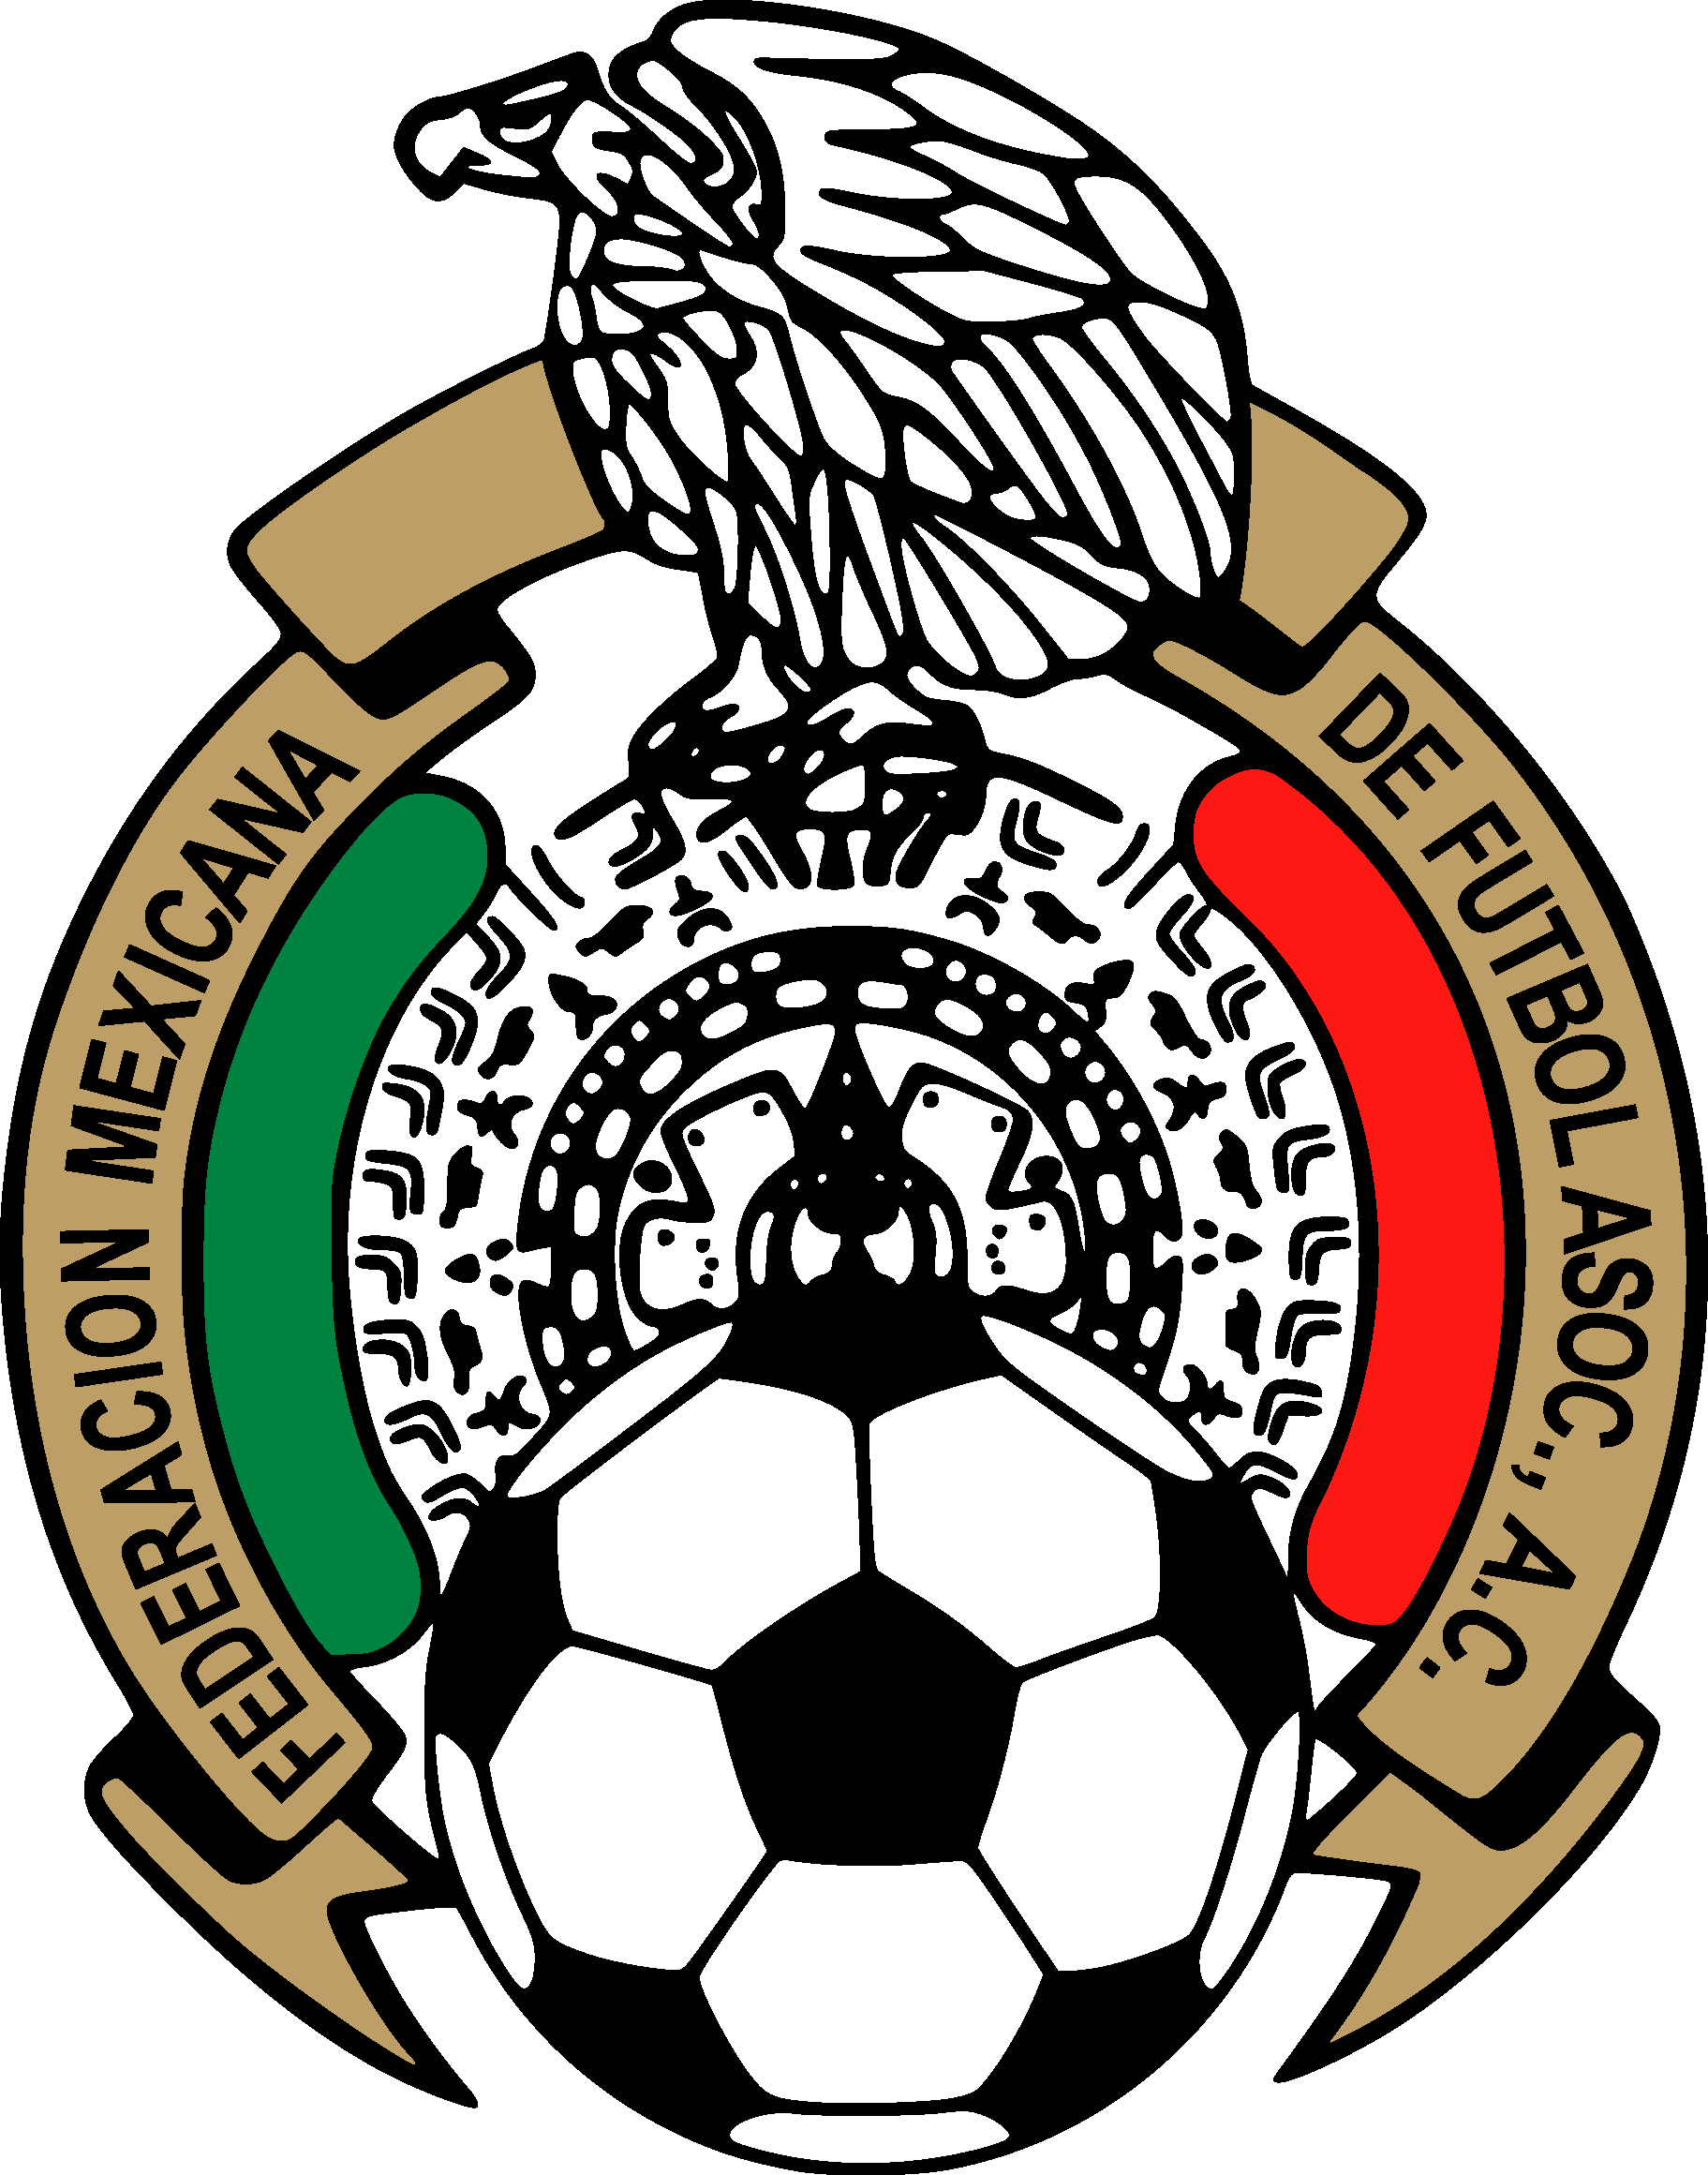 2ce777bfb2c Mexican Football Federation & Mexico National Football Team Logo [PDF]  Vector EPS Free Download, Logo, Icons, Clipart